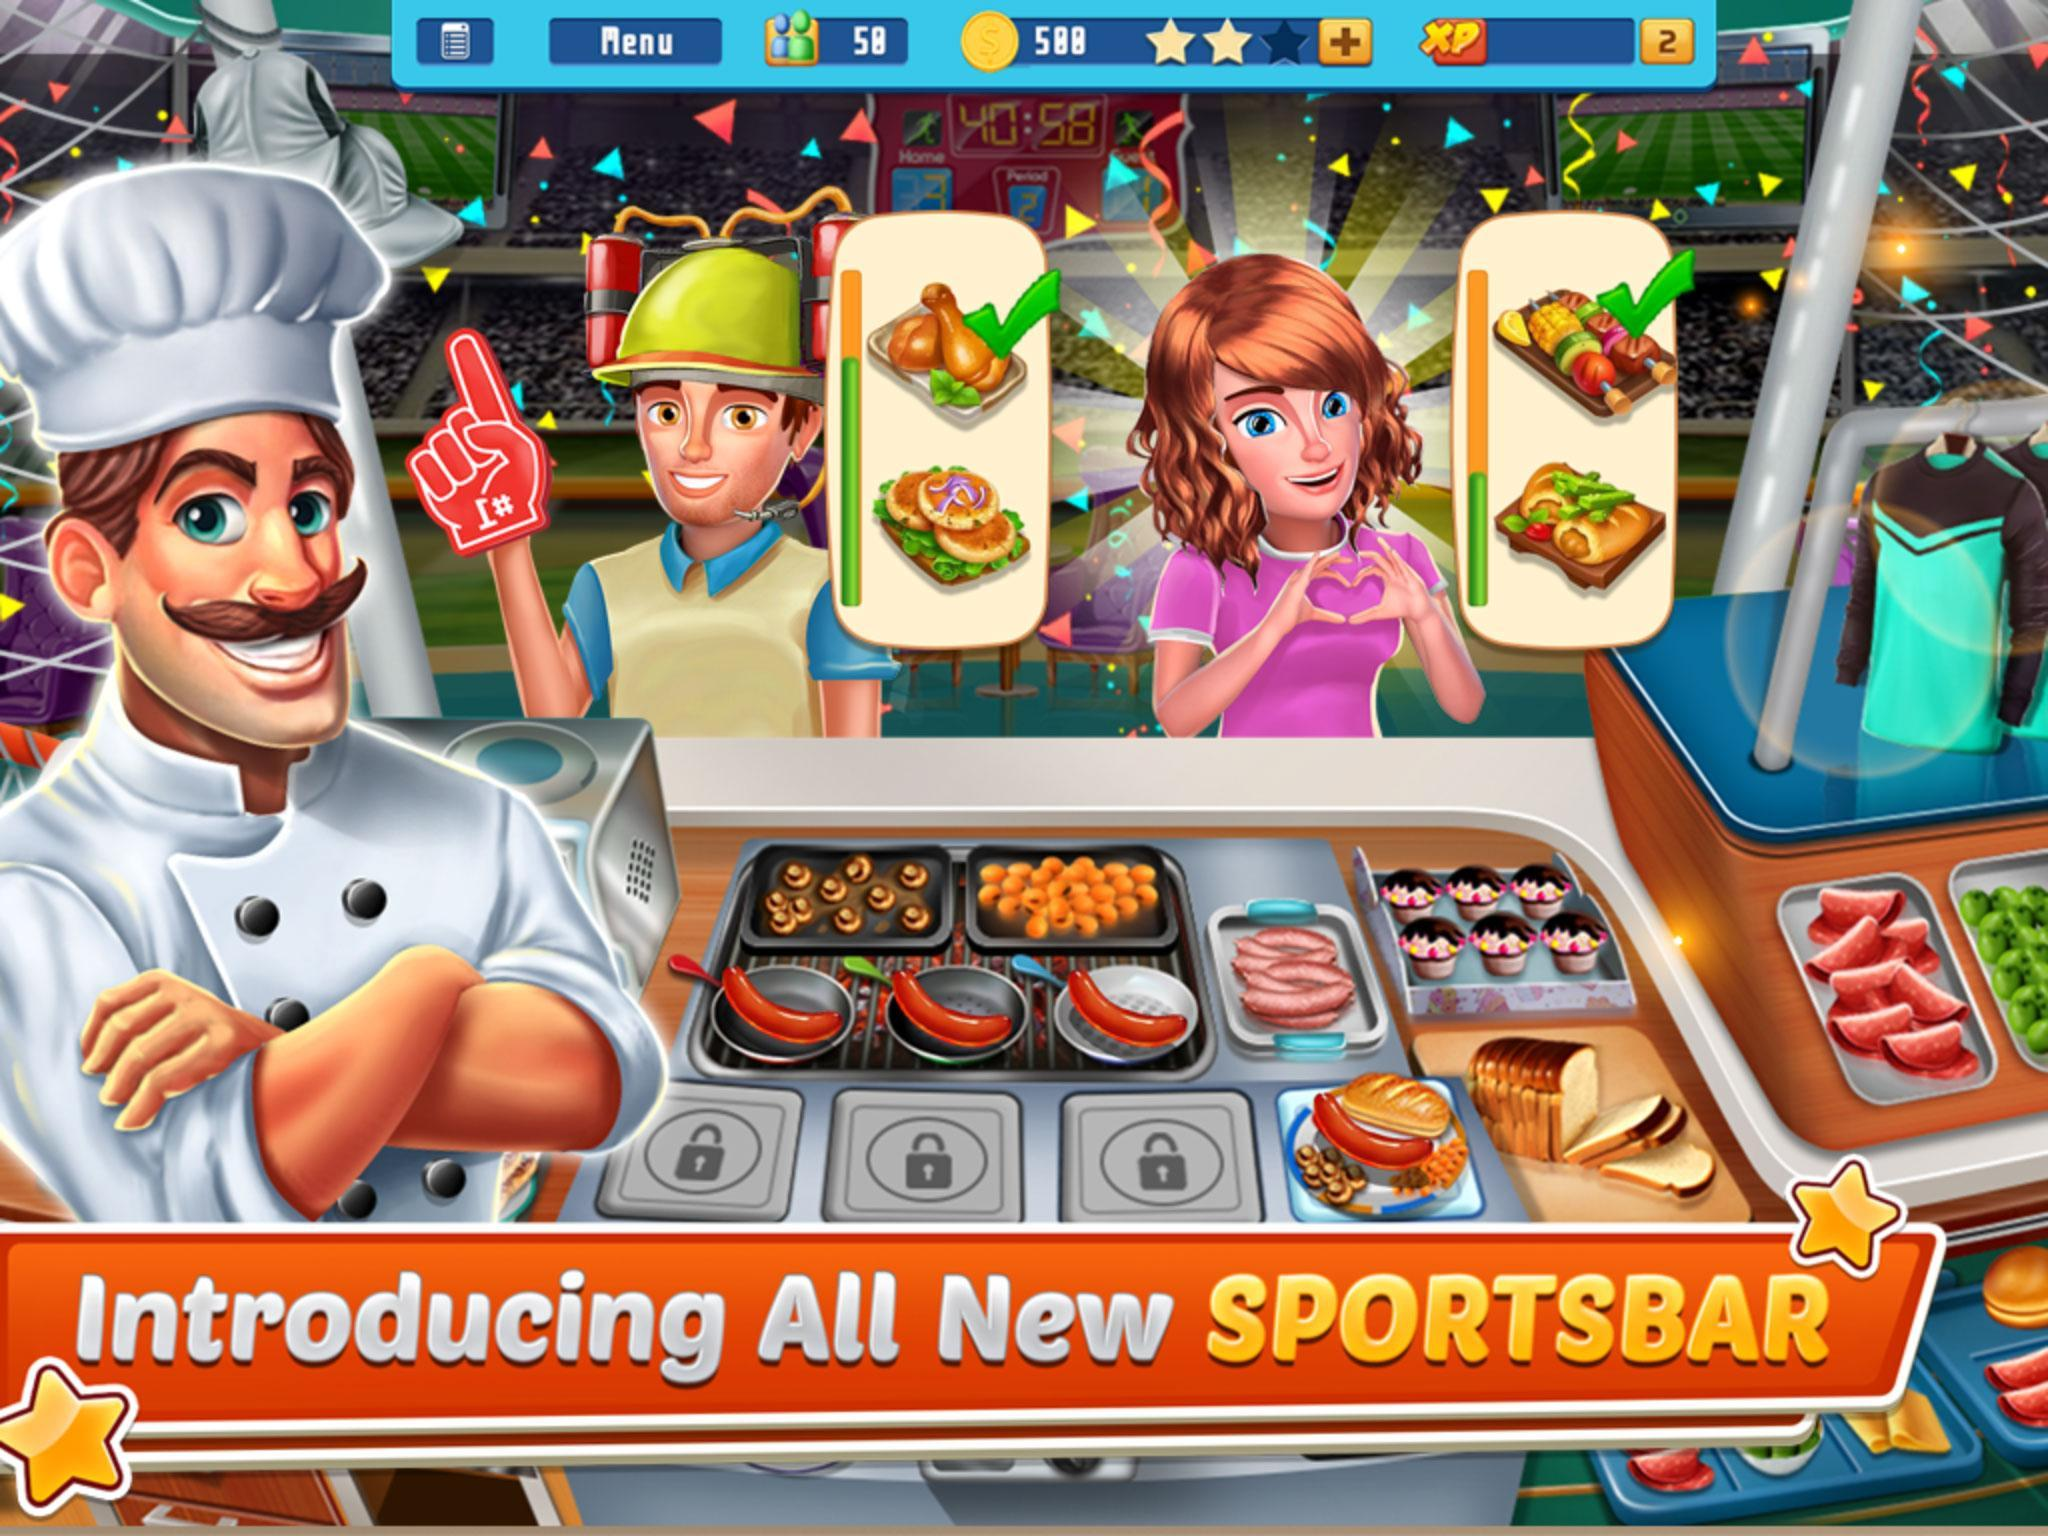 Chef's Life : Crazy Restaurant Kitchen 5.7 Screenshot 14